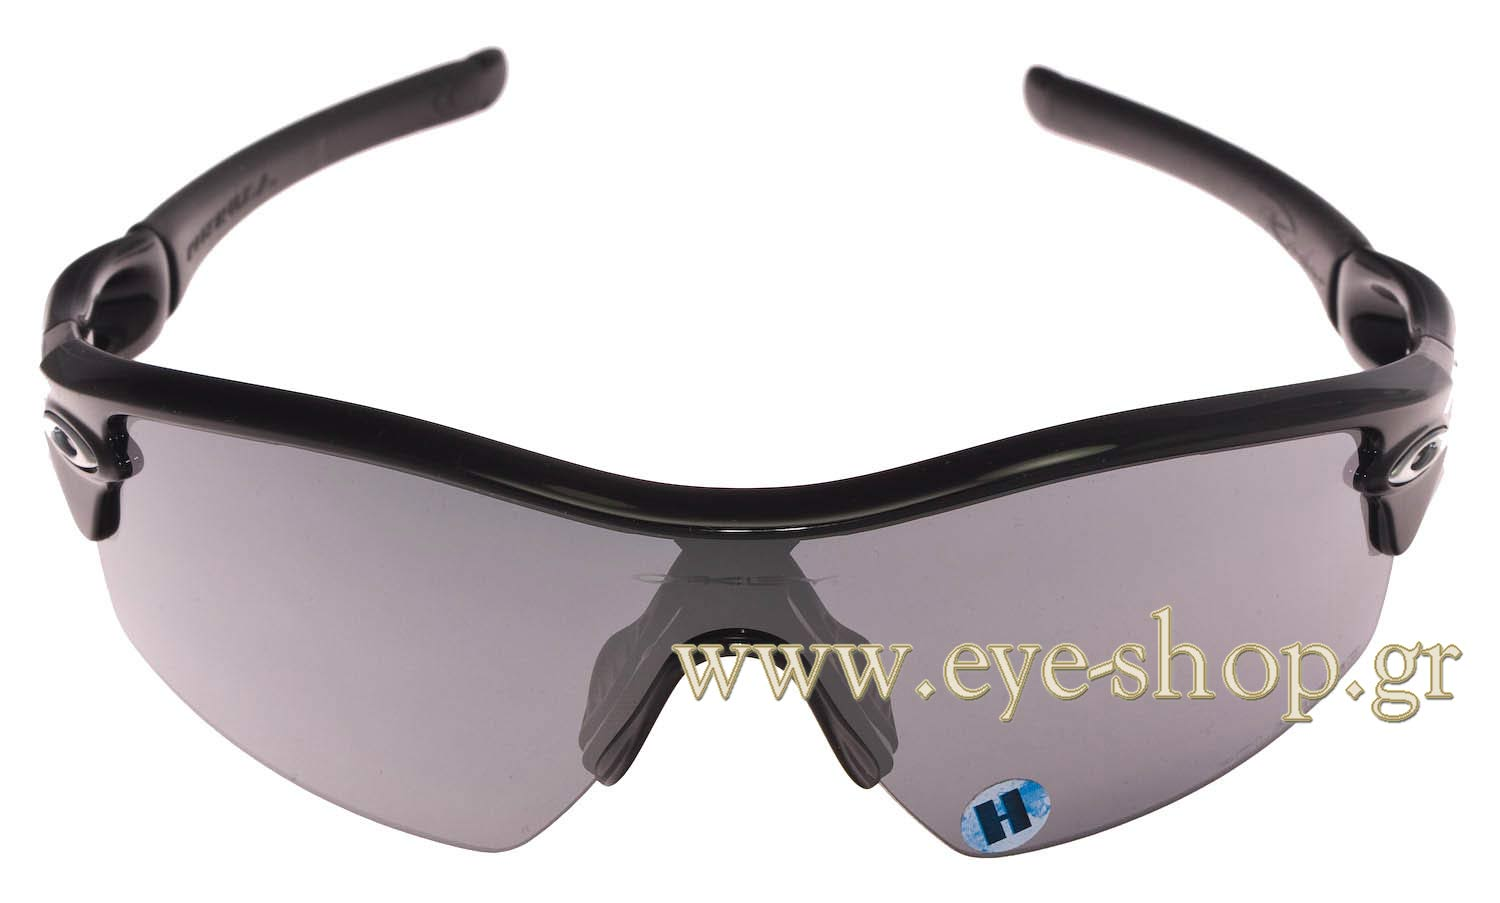 6bd7e2eac3 Oakley Shooting Glasses Discount « Heritage Malta